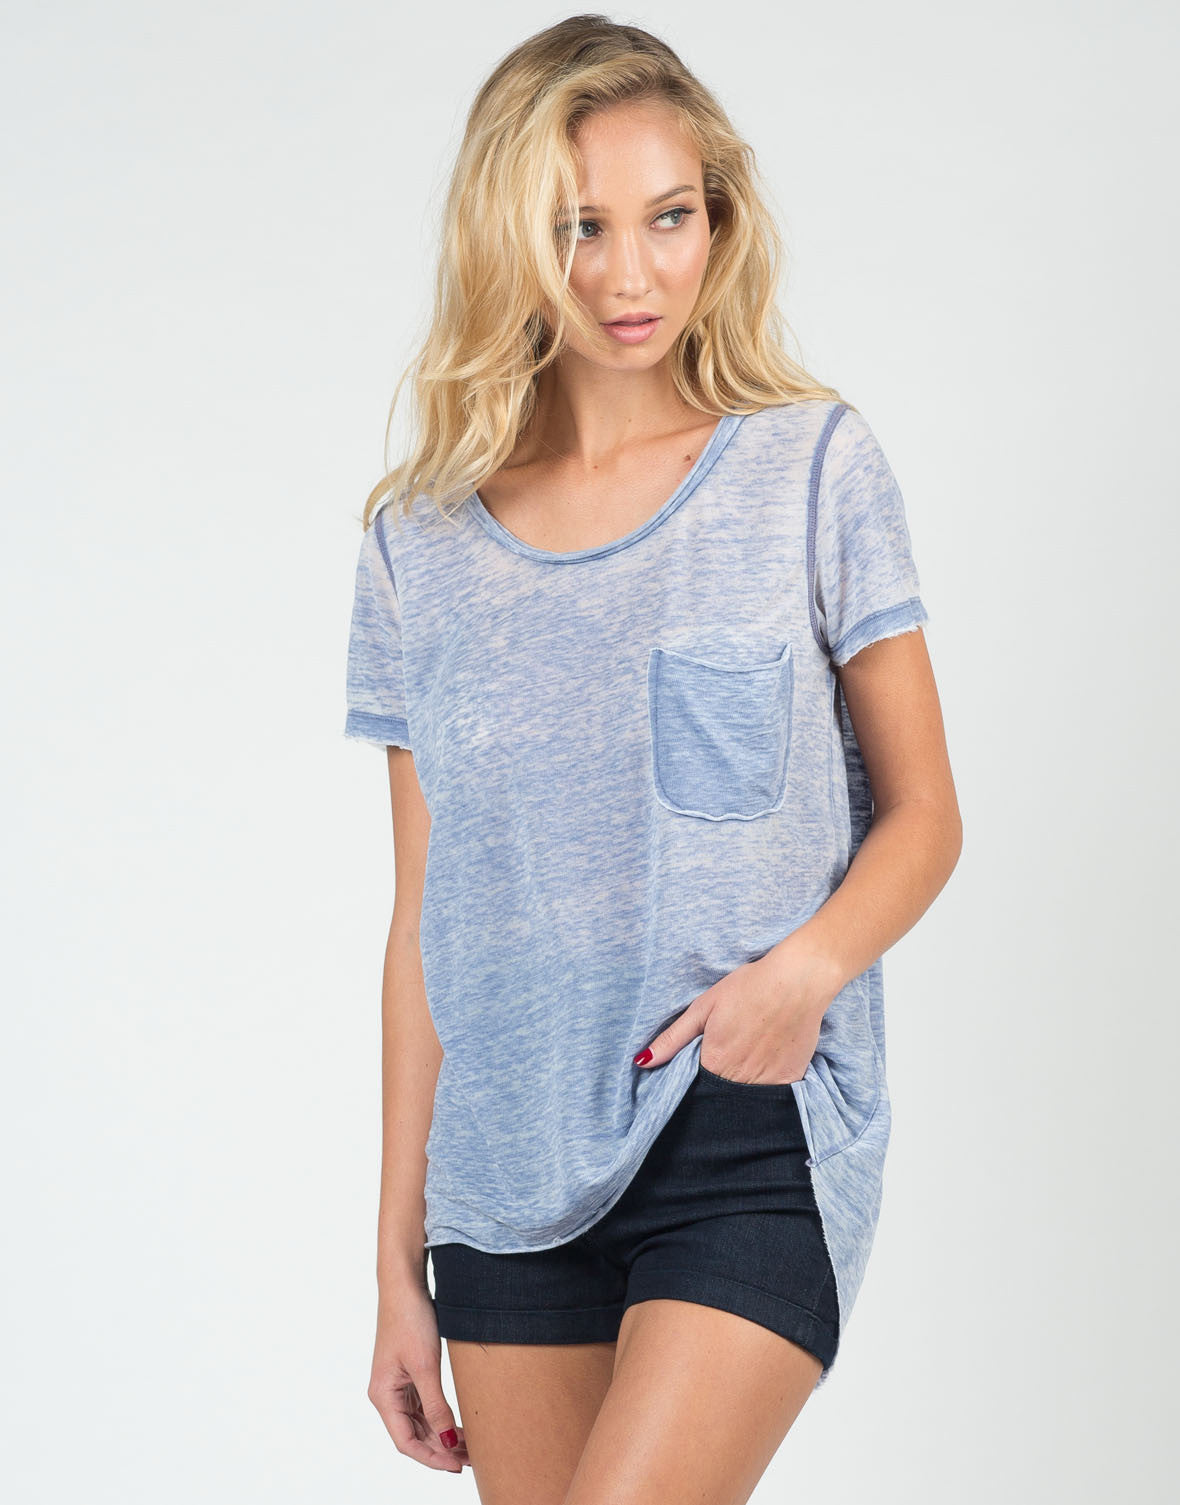 Front View of Distressed Heathered Tee